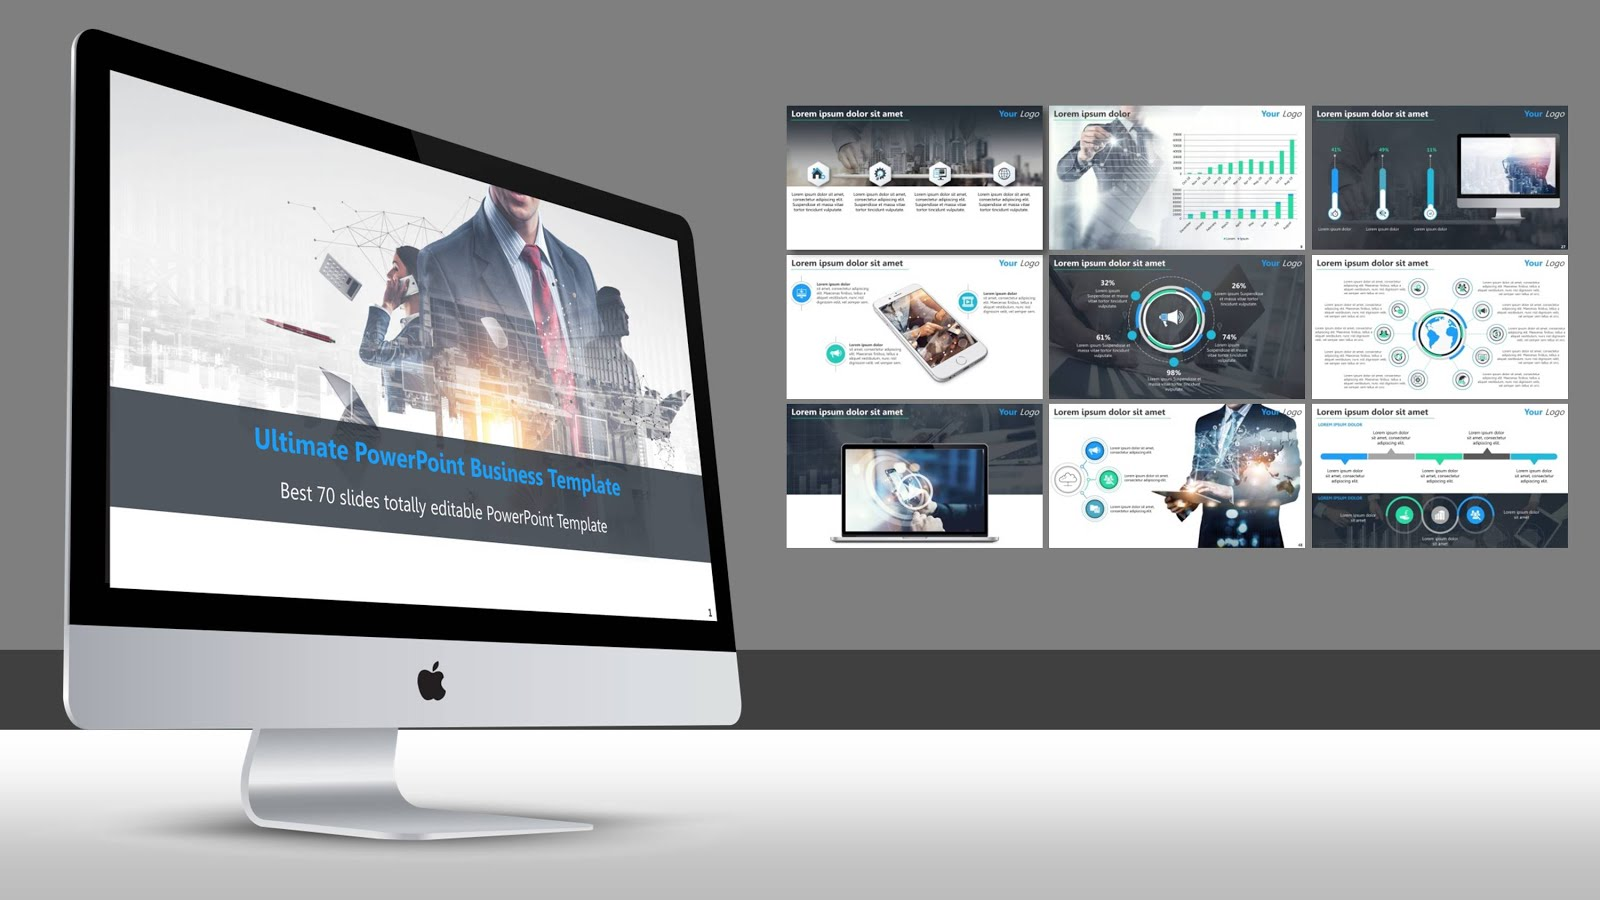 Ultimate PowerPoint Business Template